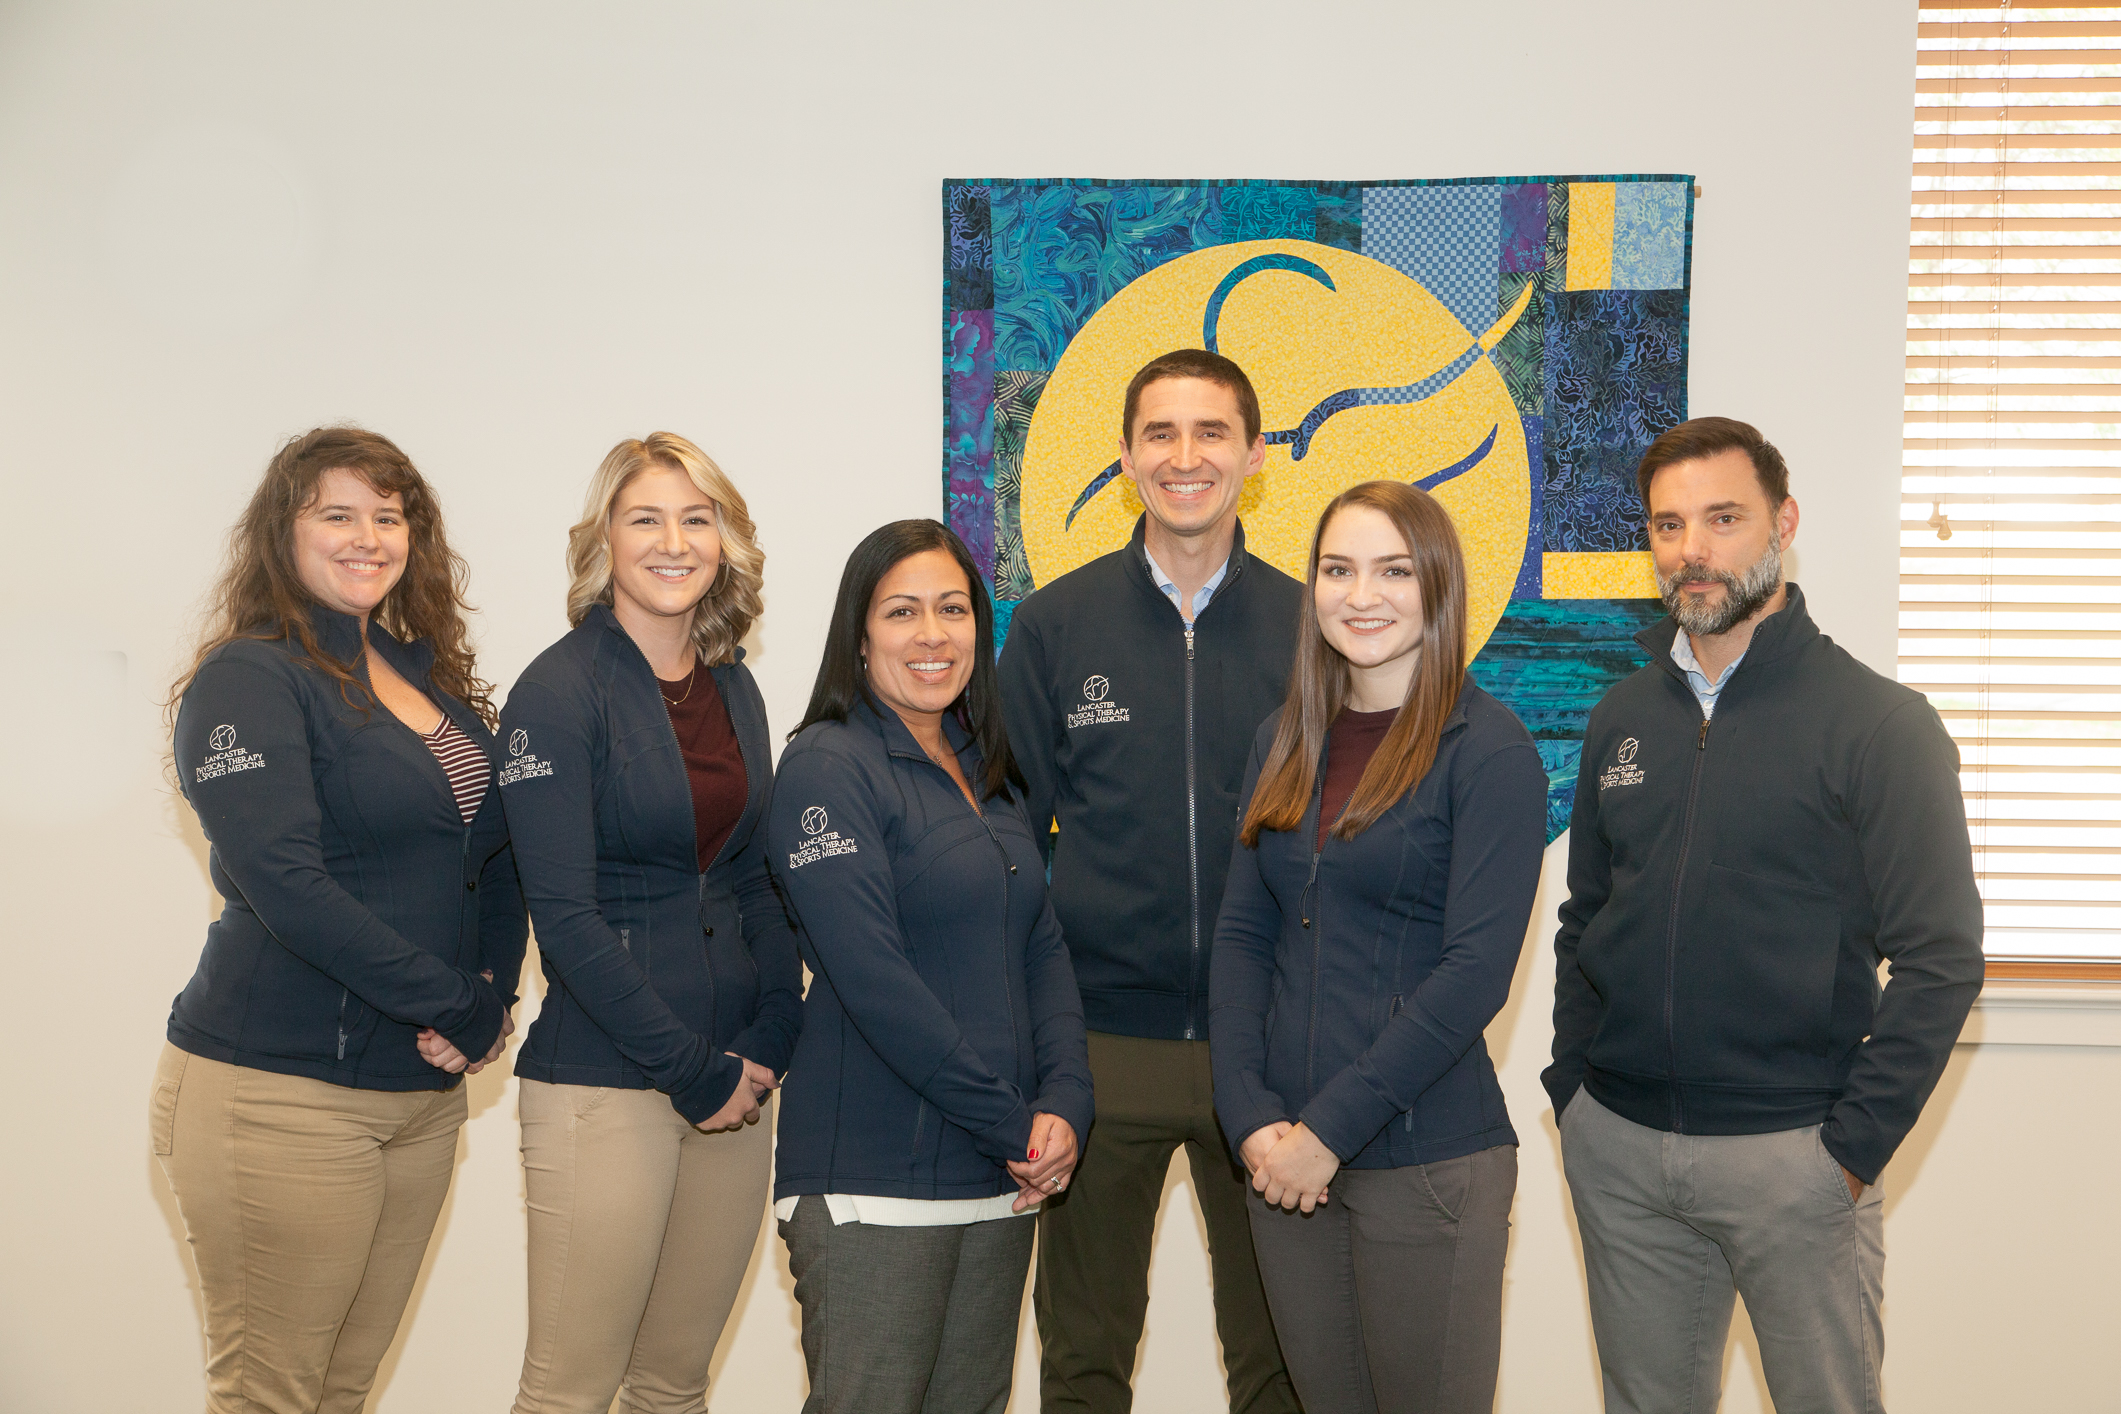 lancaster physical therapy staff